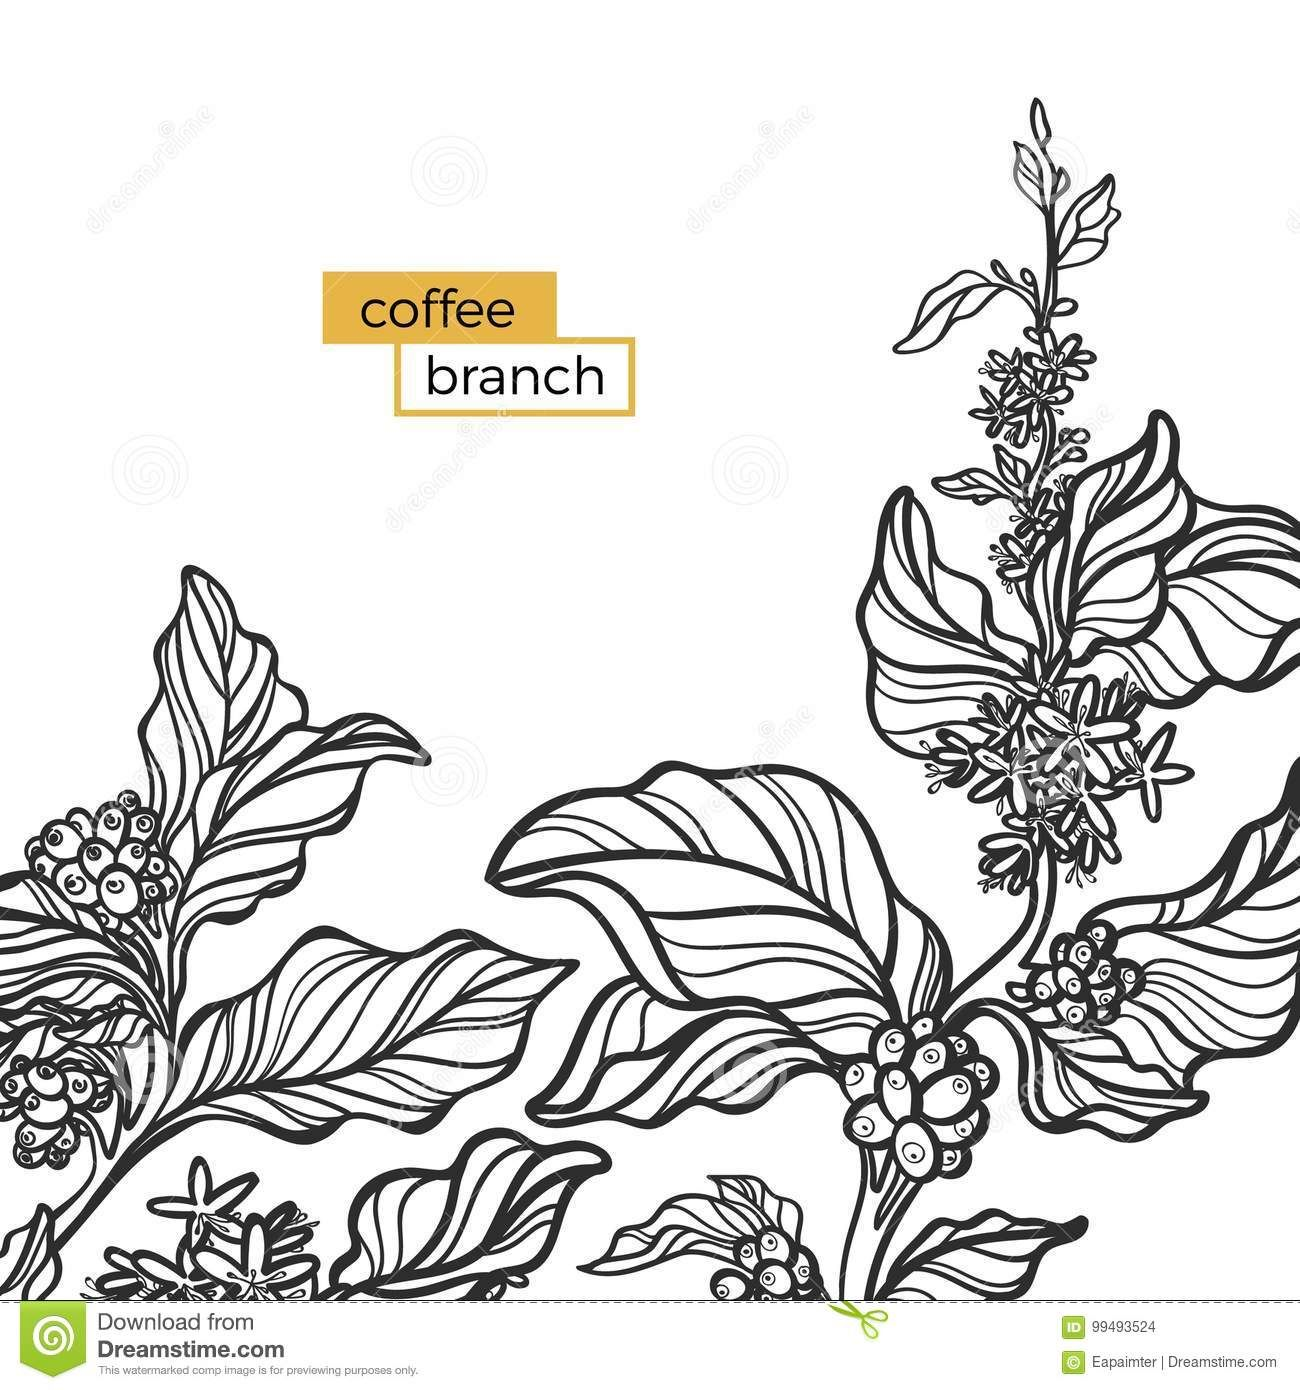 Template Of Black Branch Of Coffee Tree With Leaves And